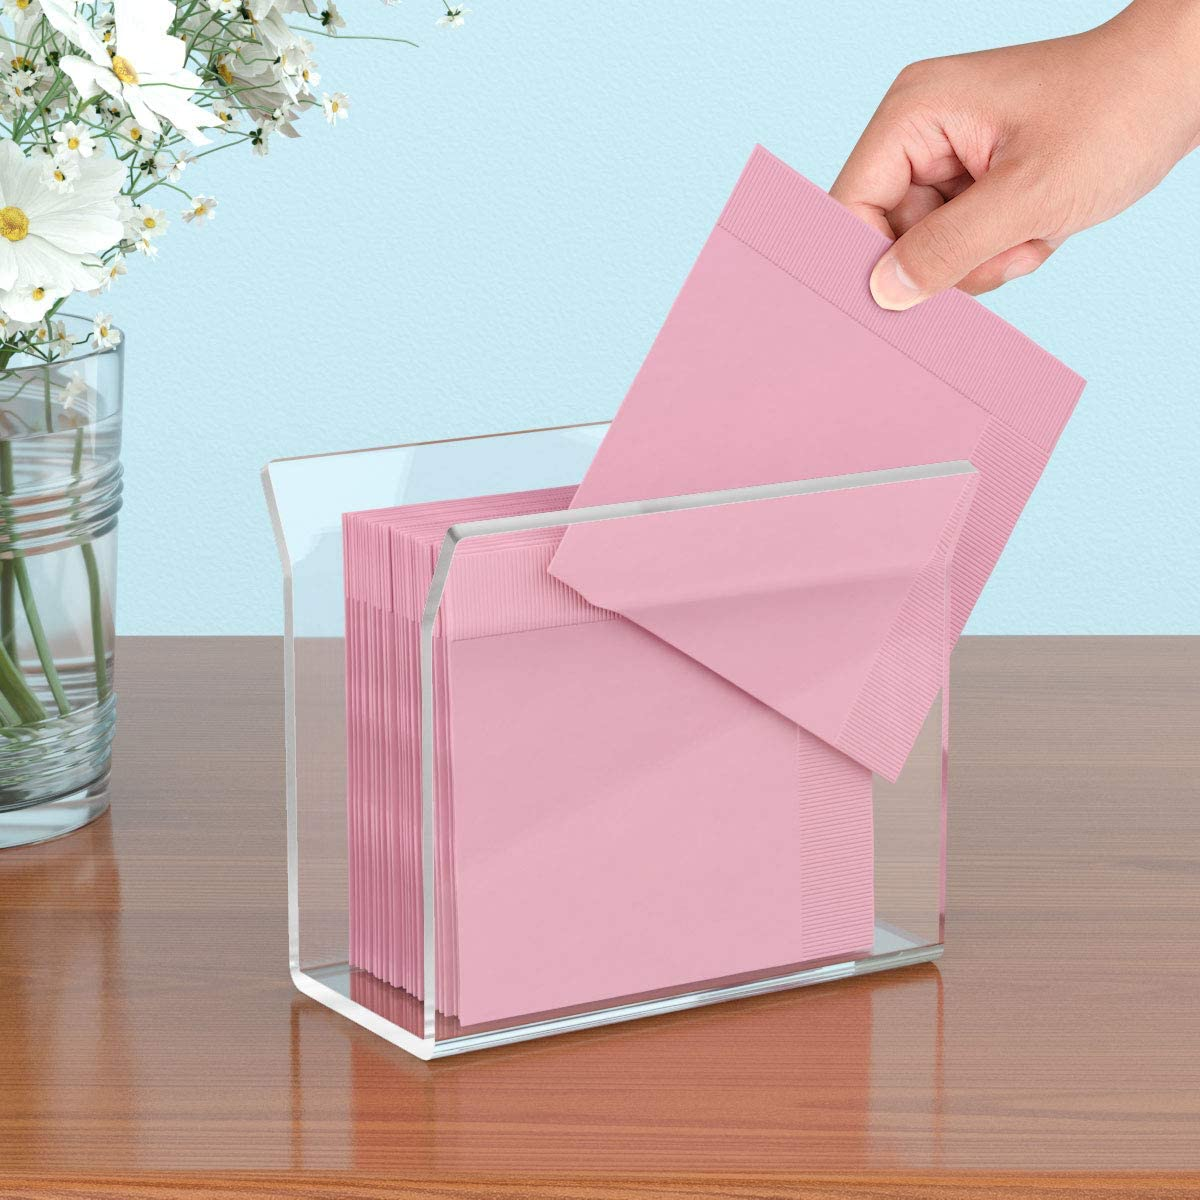 NIUBEE Acrylic Cocktail Napkin Holder 2Pack Clear Decorative Beverage Napkin Stand for Kitchen Dining Wedding Table U Shape Vertical Display